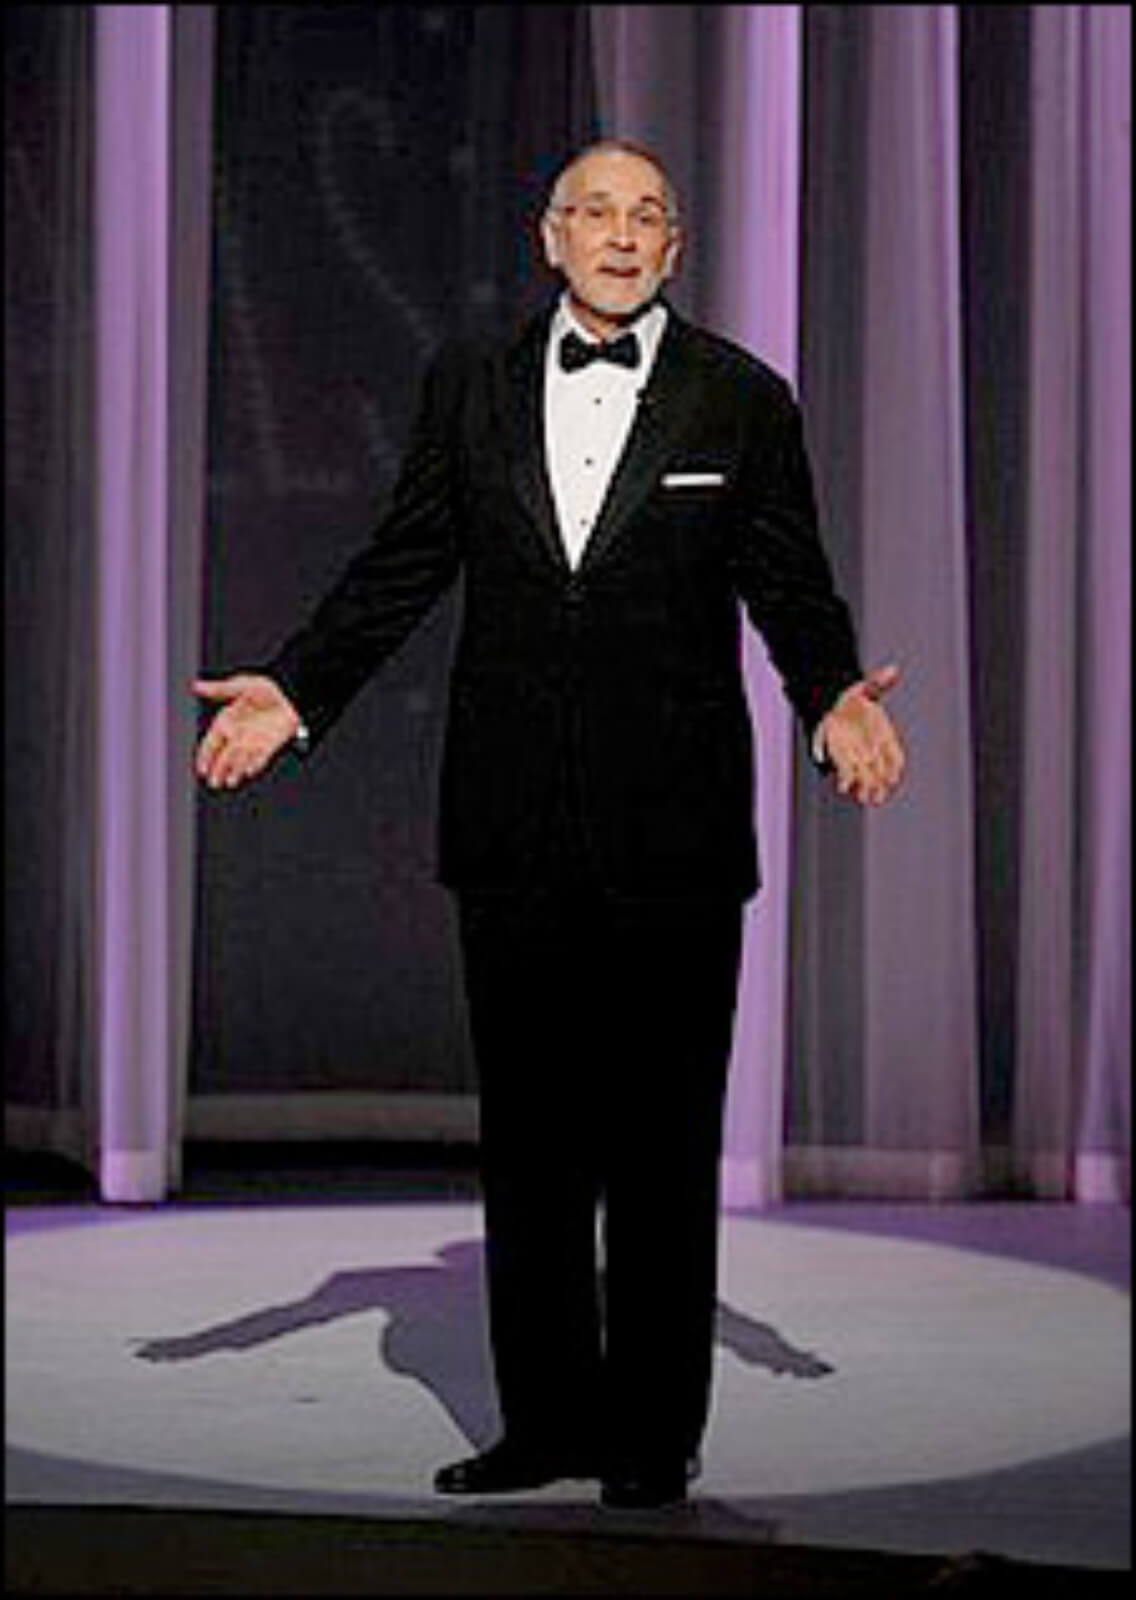 Frank Langella in front of a purple curtain wearing a tux and presenting arms forward.